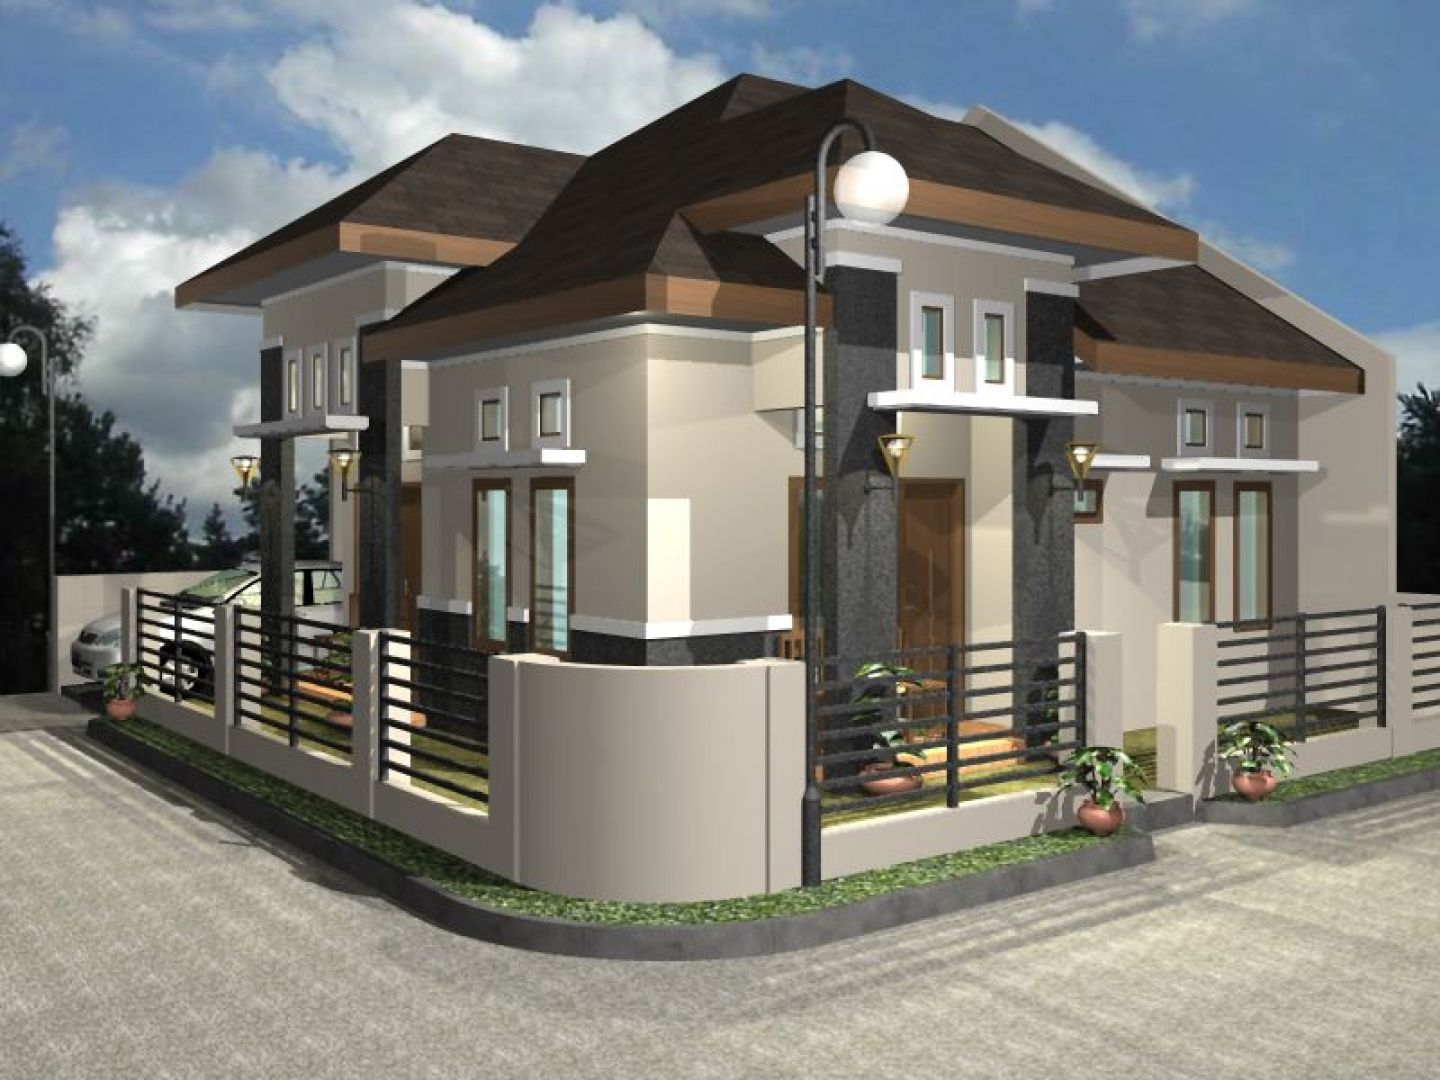 ^ 1000+ images about house designs on Pinterest | House plans ...